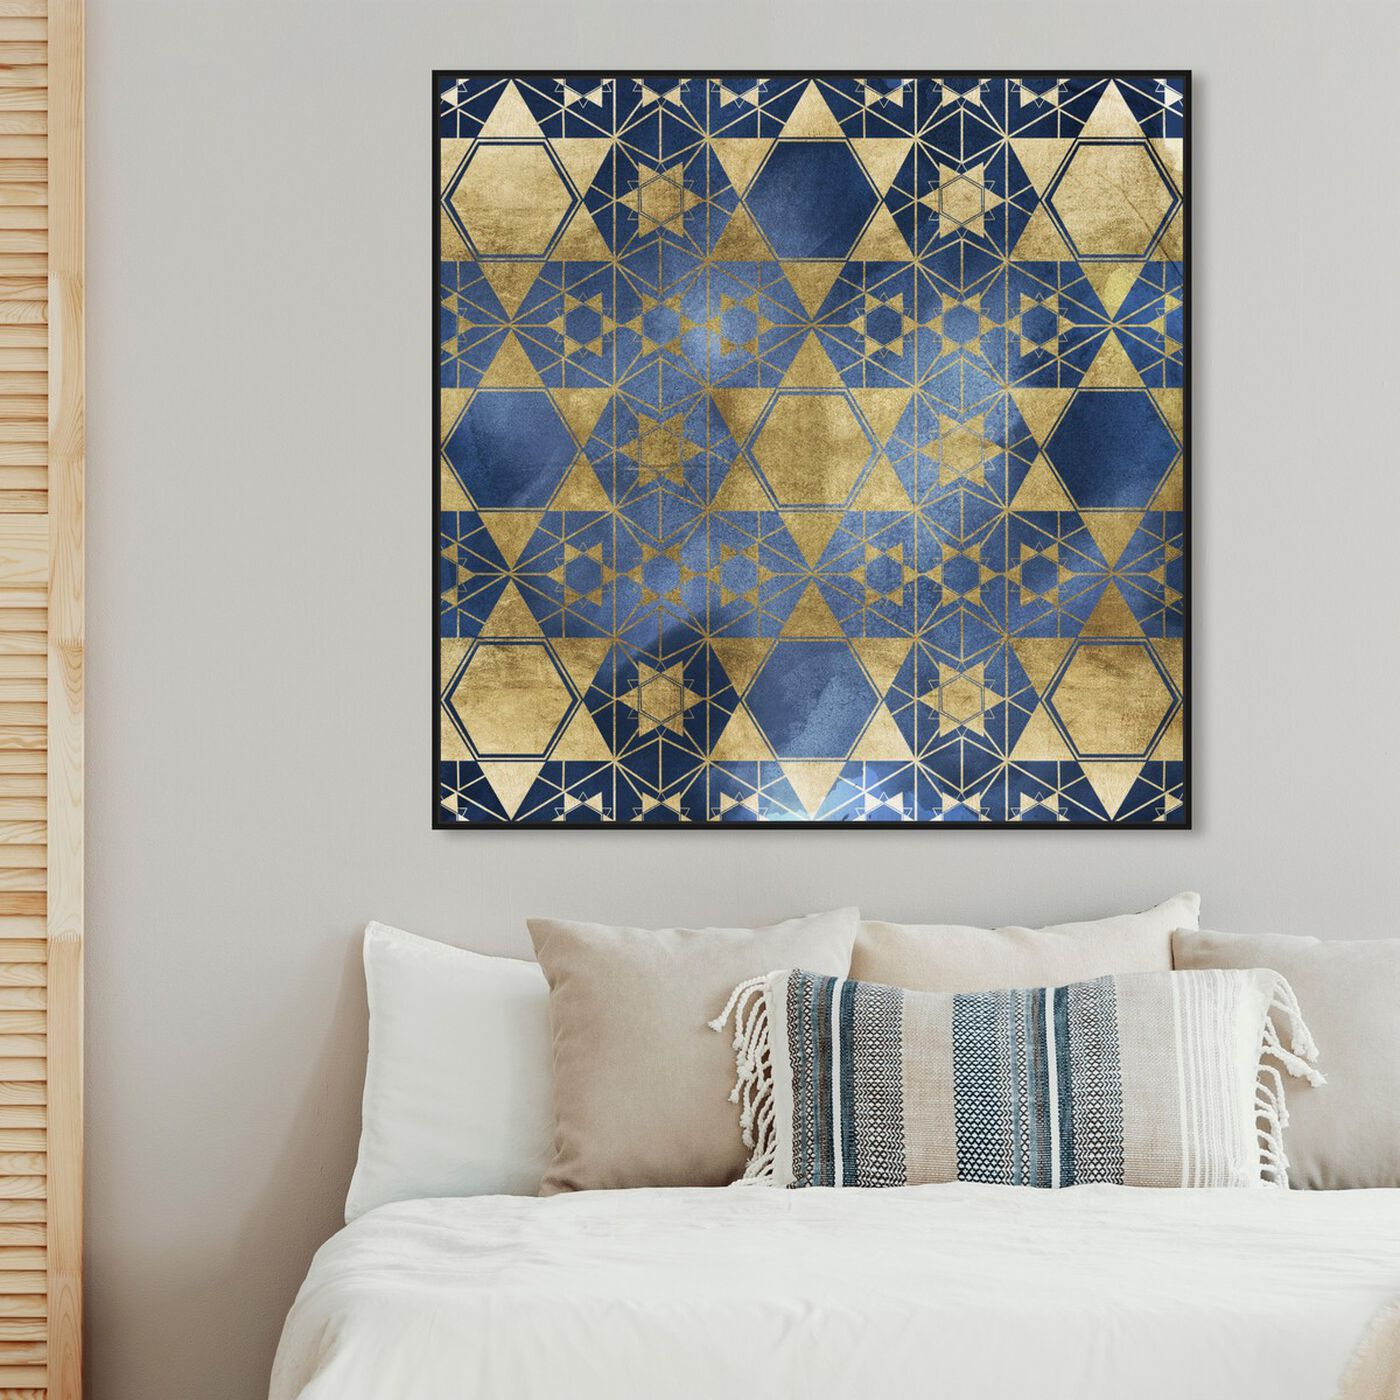 Hanging view of Golden Blue Star Decorative featuring abstract and patterns art.